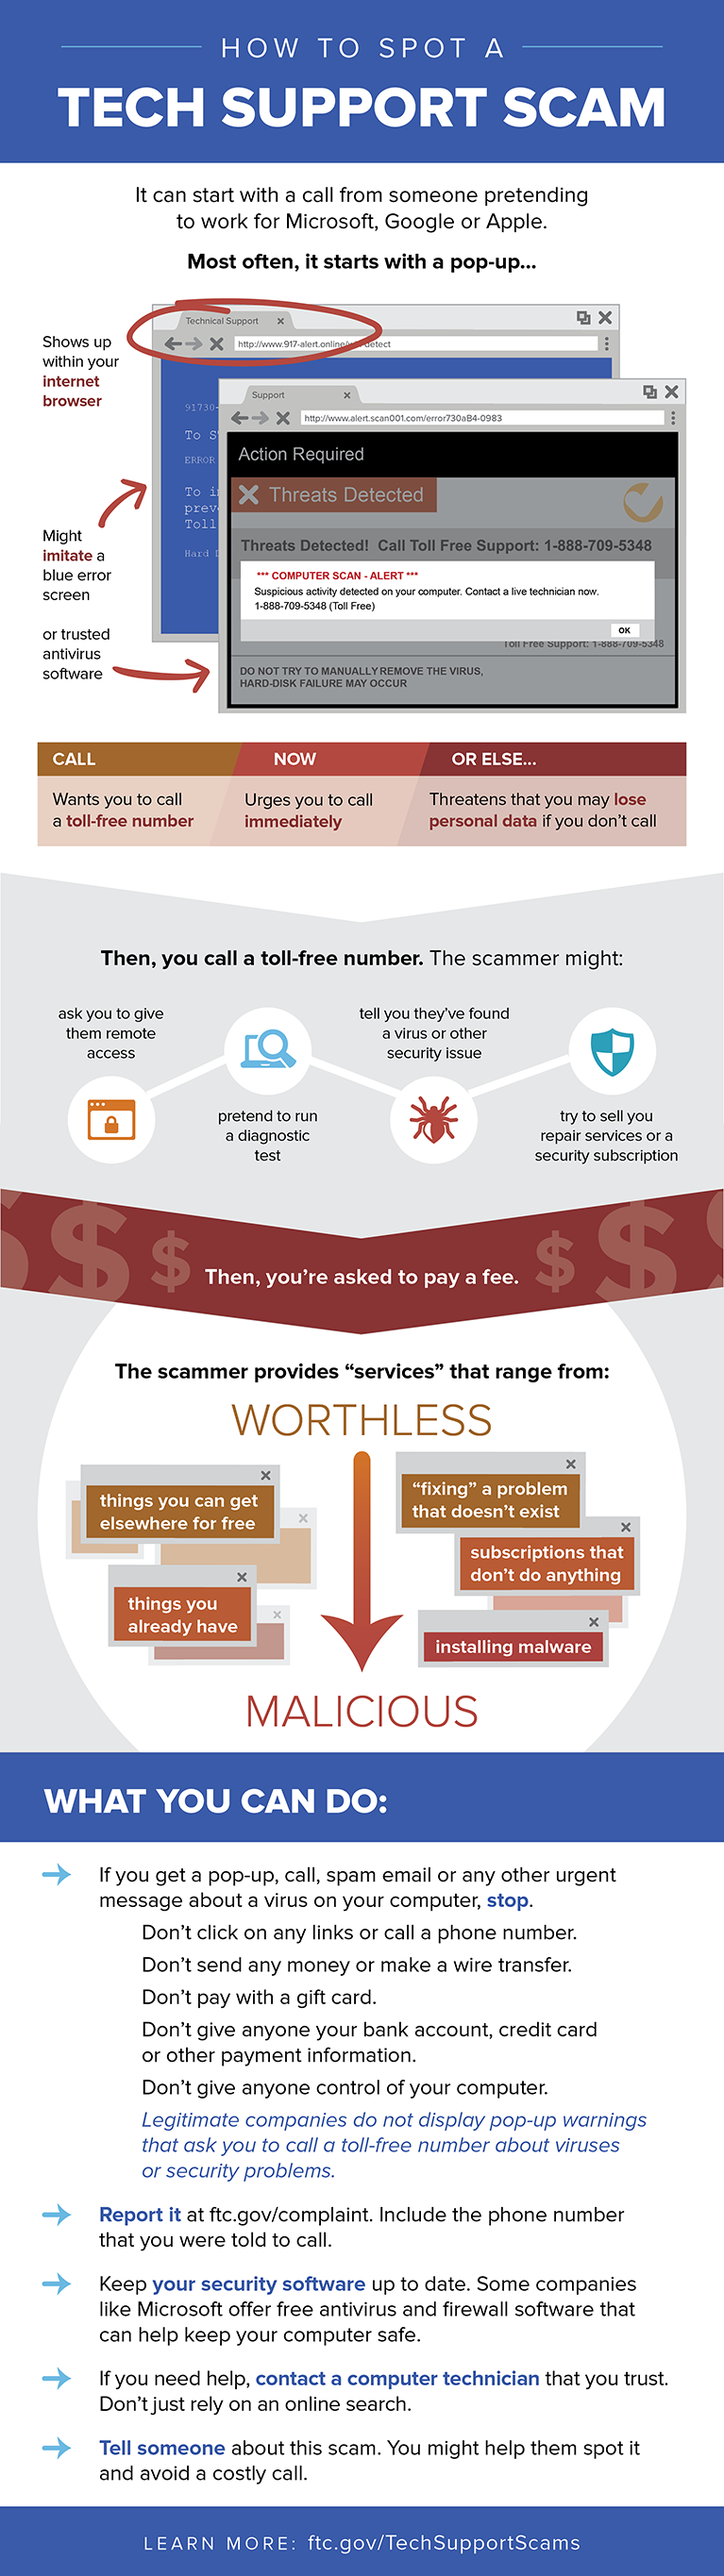 This infographic explains how tech support scammers contact you and what you can do to avoid a tech support scam.